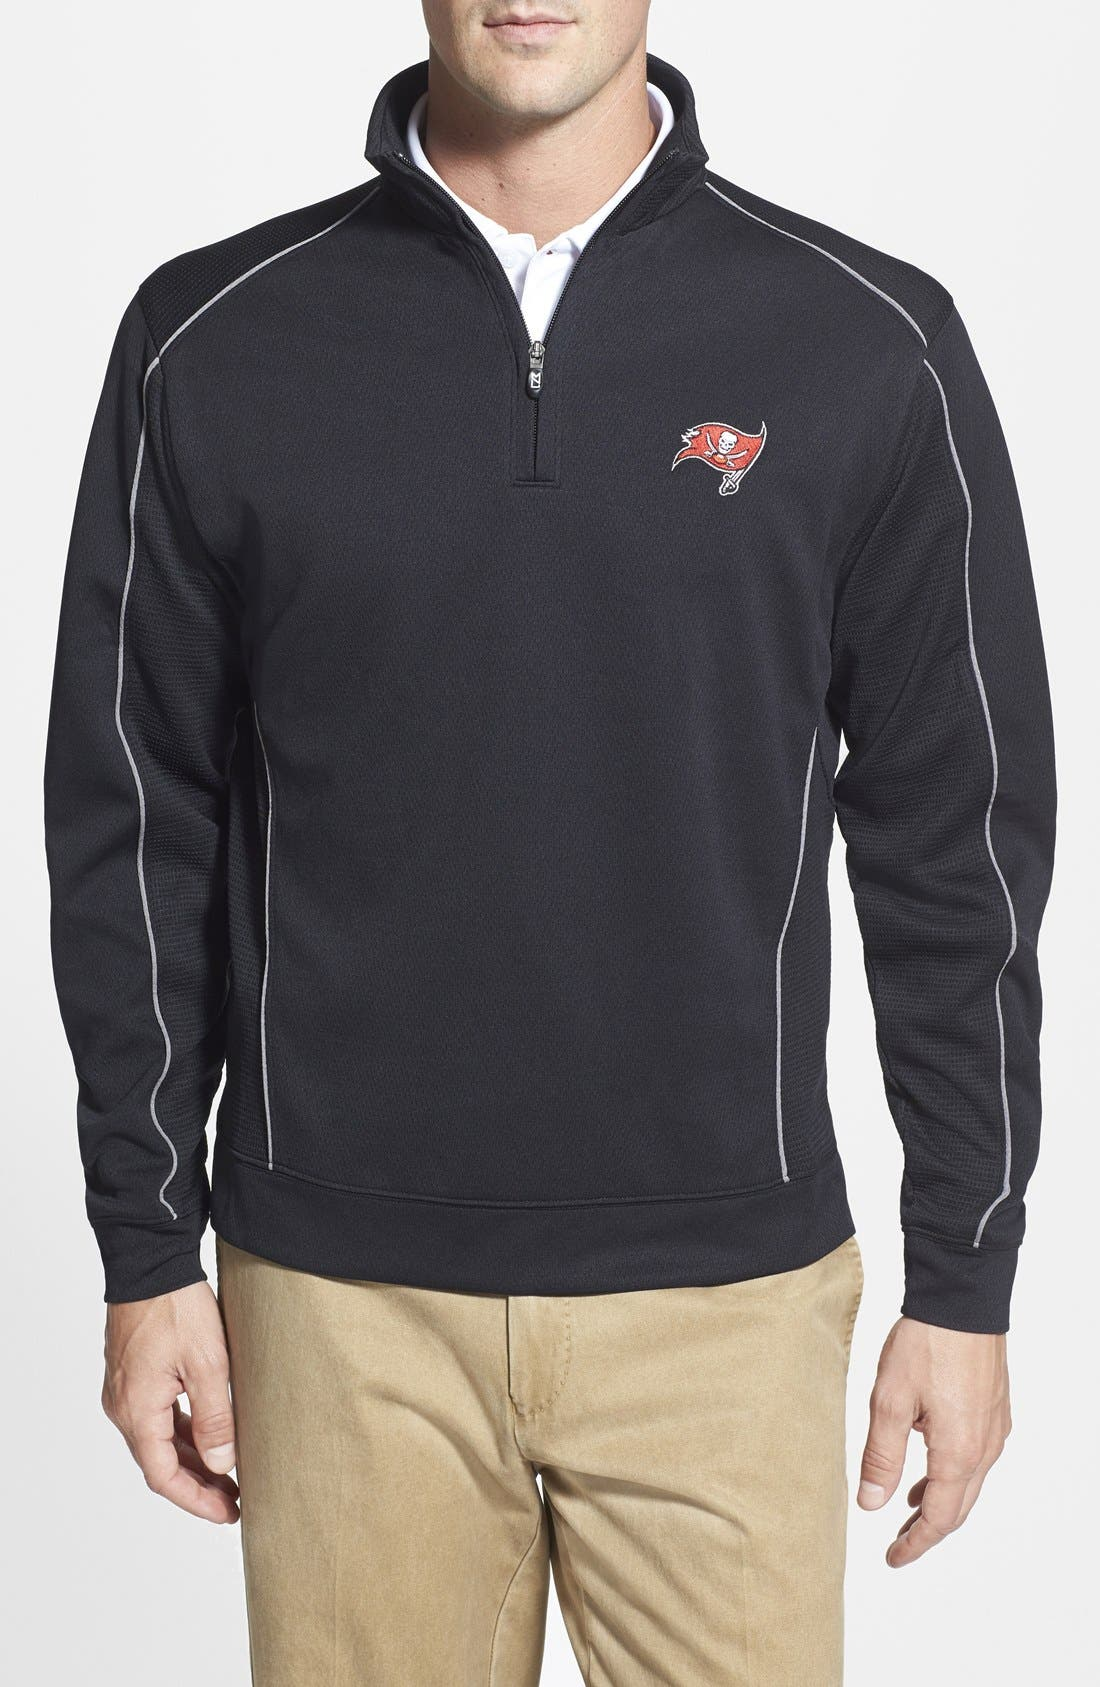 Tampa Bay Buccaneers - Edge DryTec Moisture Wicking Half Zip Pullover,                             Main thumbnail 1, color,                             001